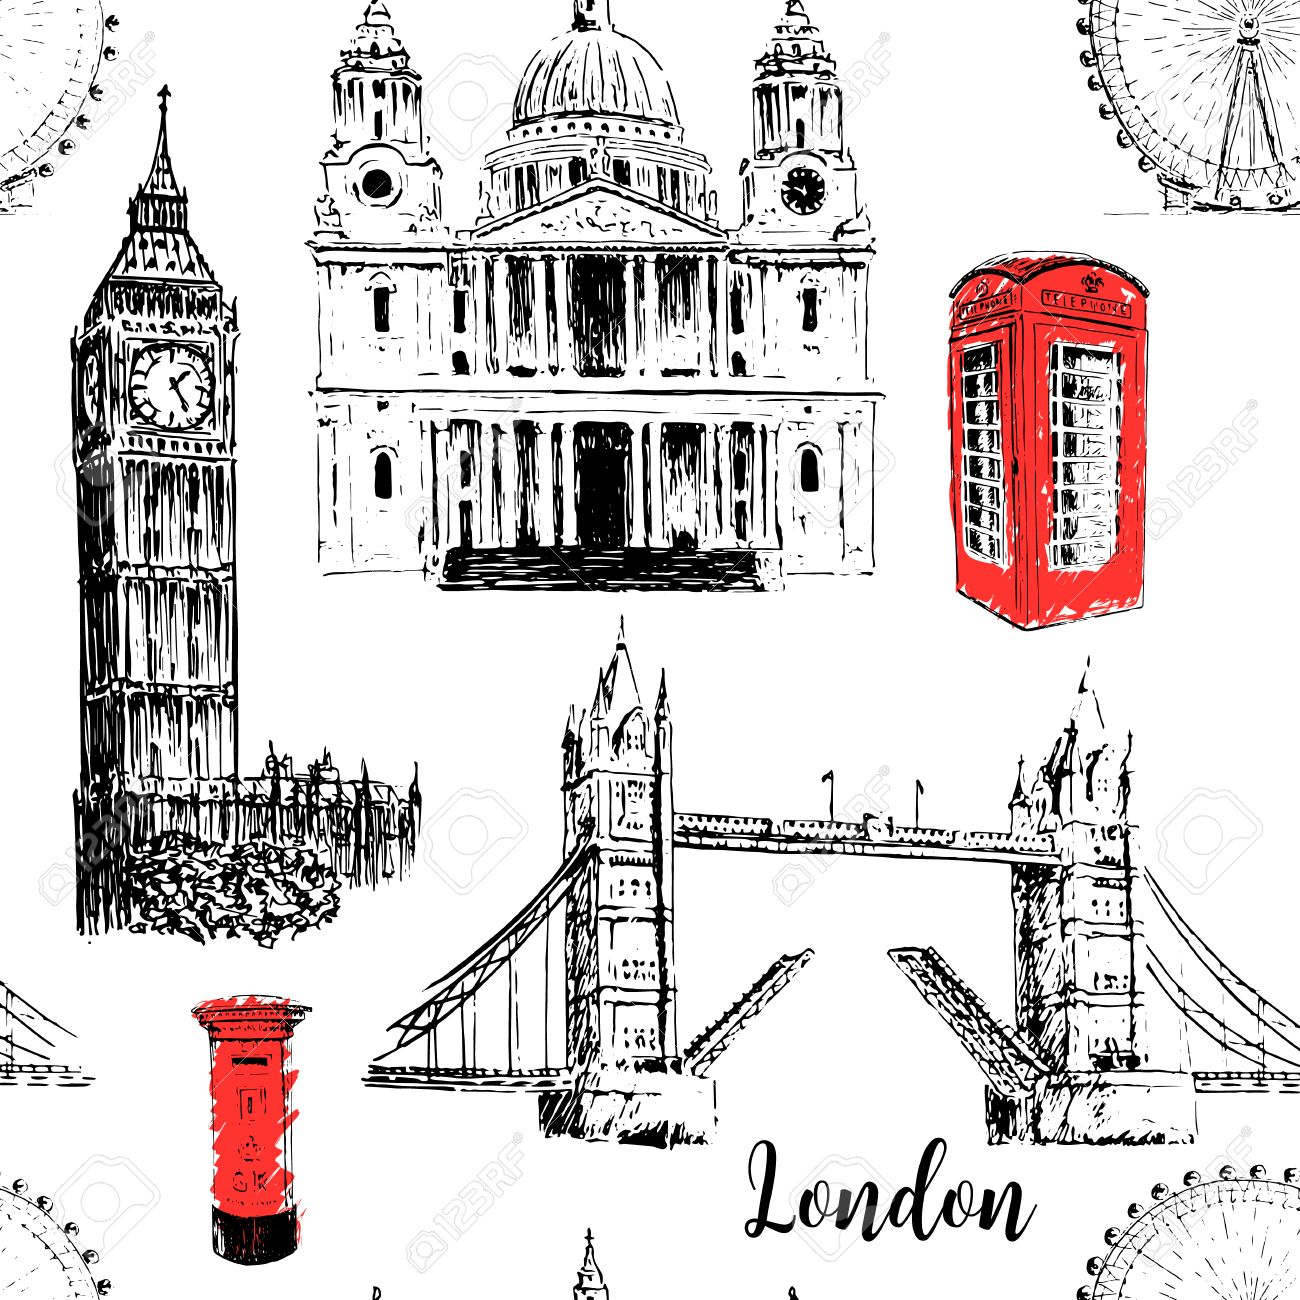 Symboles Architecturaux De Londres Cathédrale Saint Paul Big Ben Et Tower Bridge Oeil De Londres Beau Dessin Dessiné à La Main Modèle Sans